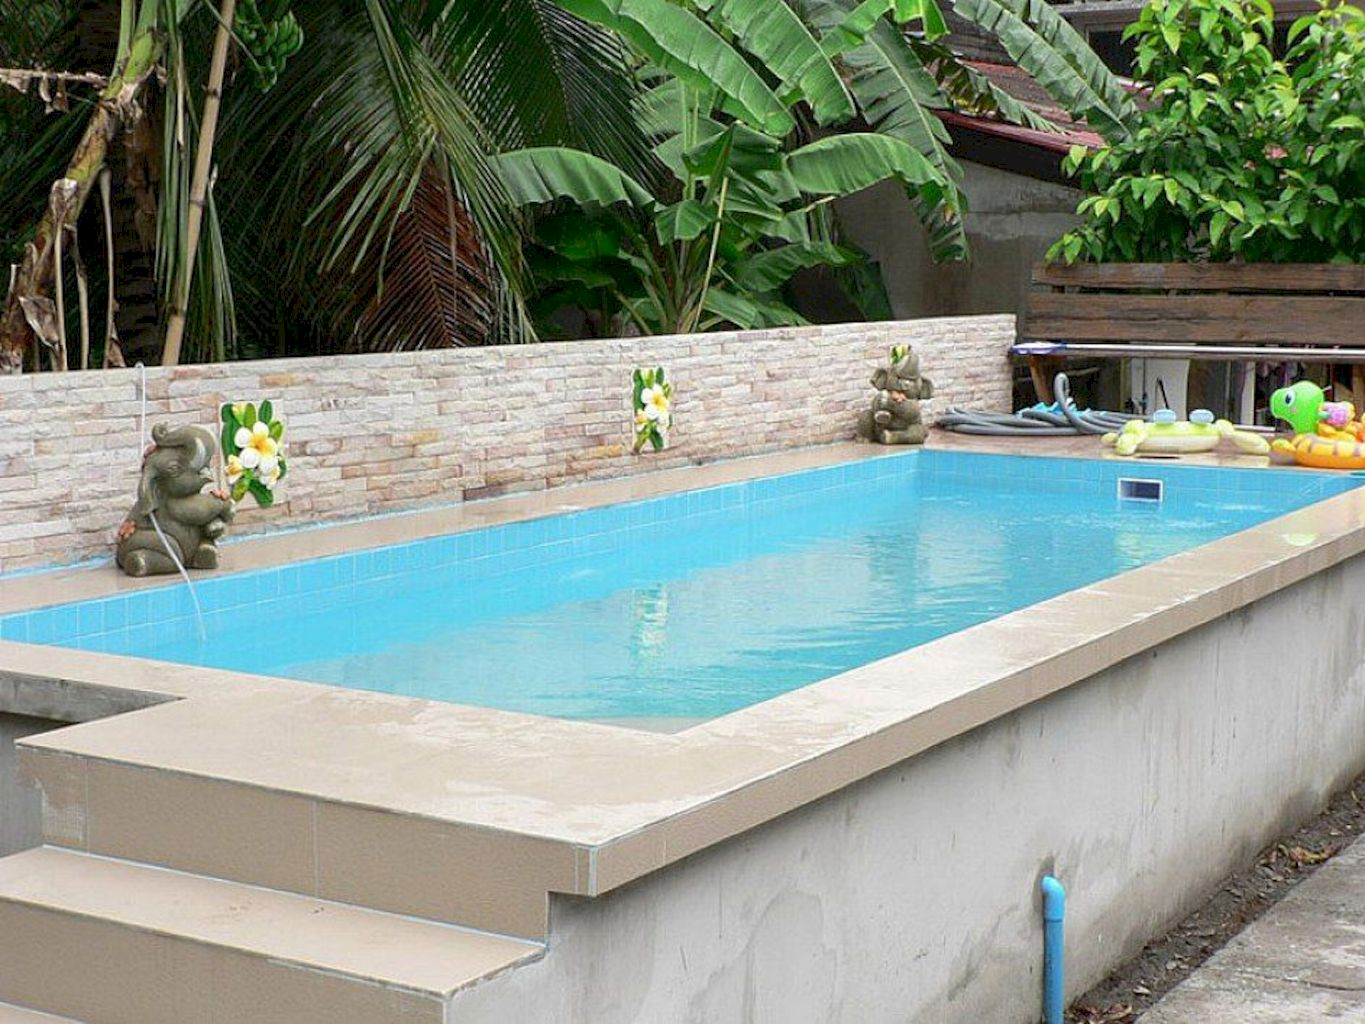 Simple pool designs built above ground designed with cheap materials for simple outdoor relieves Image 5